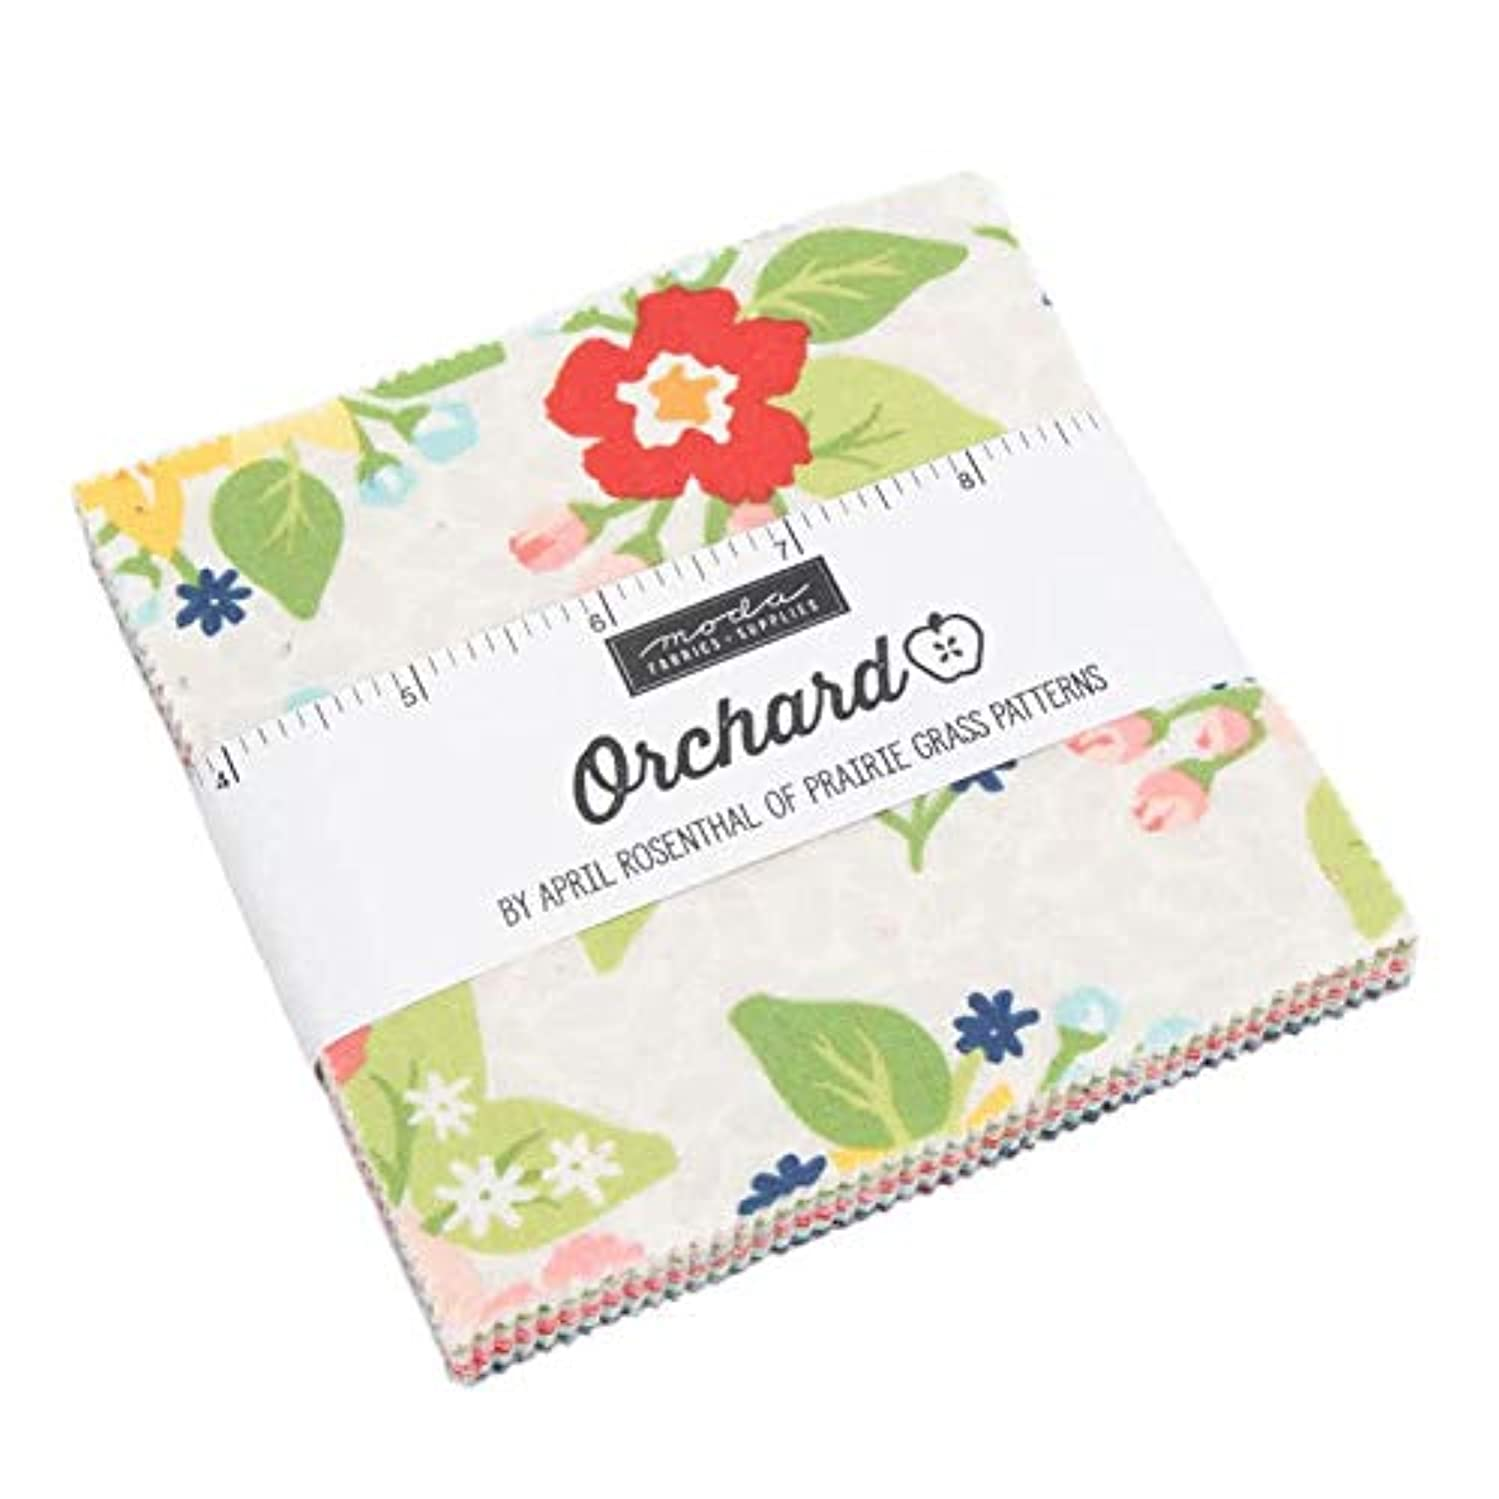 Orchard Charm Pack by April Rosenthal of Prairie Grass Patterns; 42-5